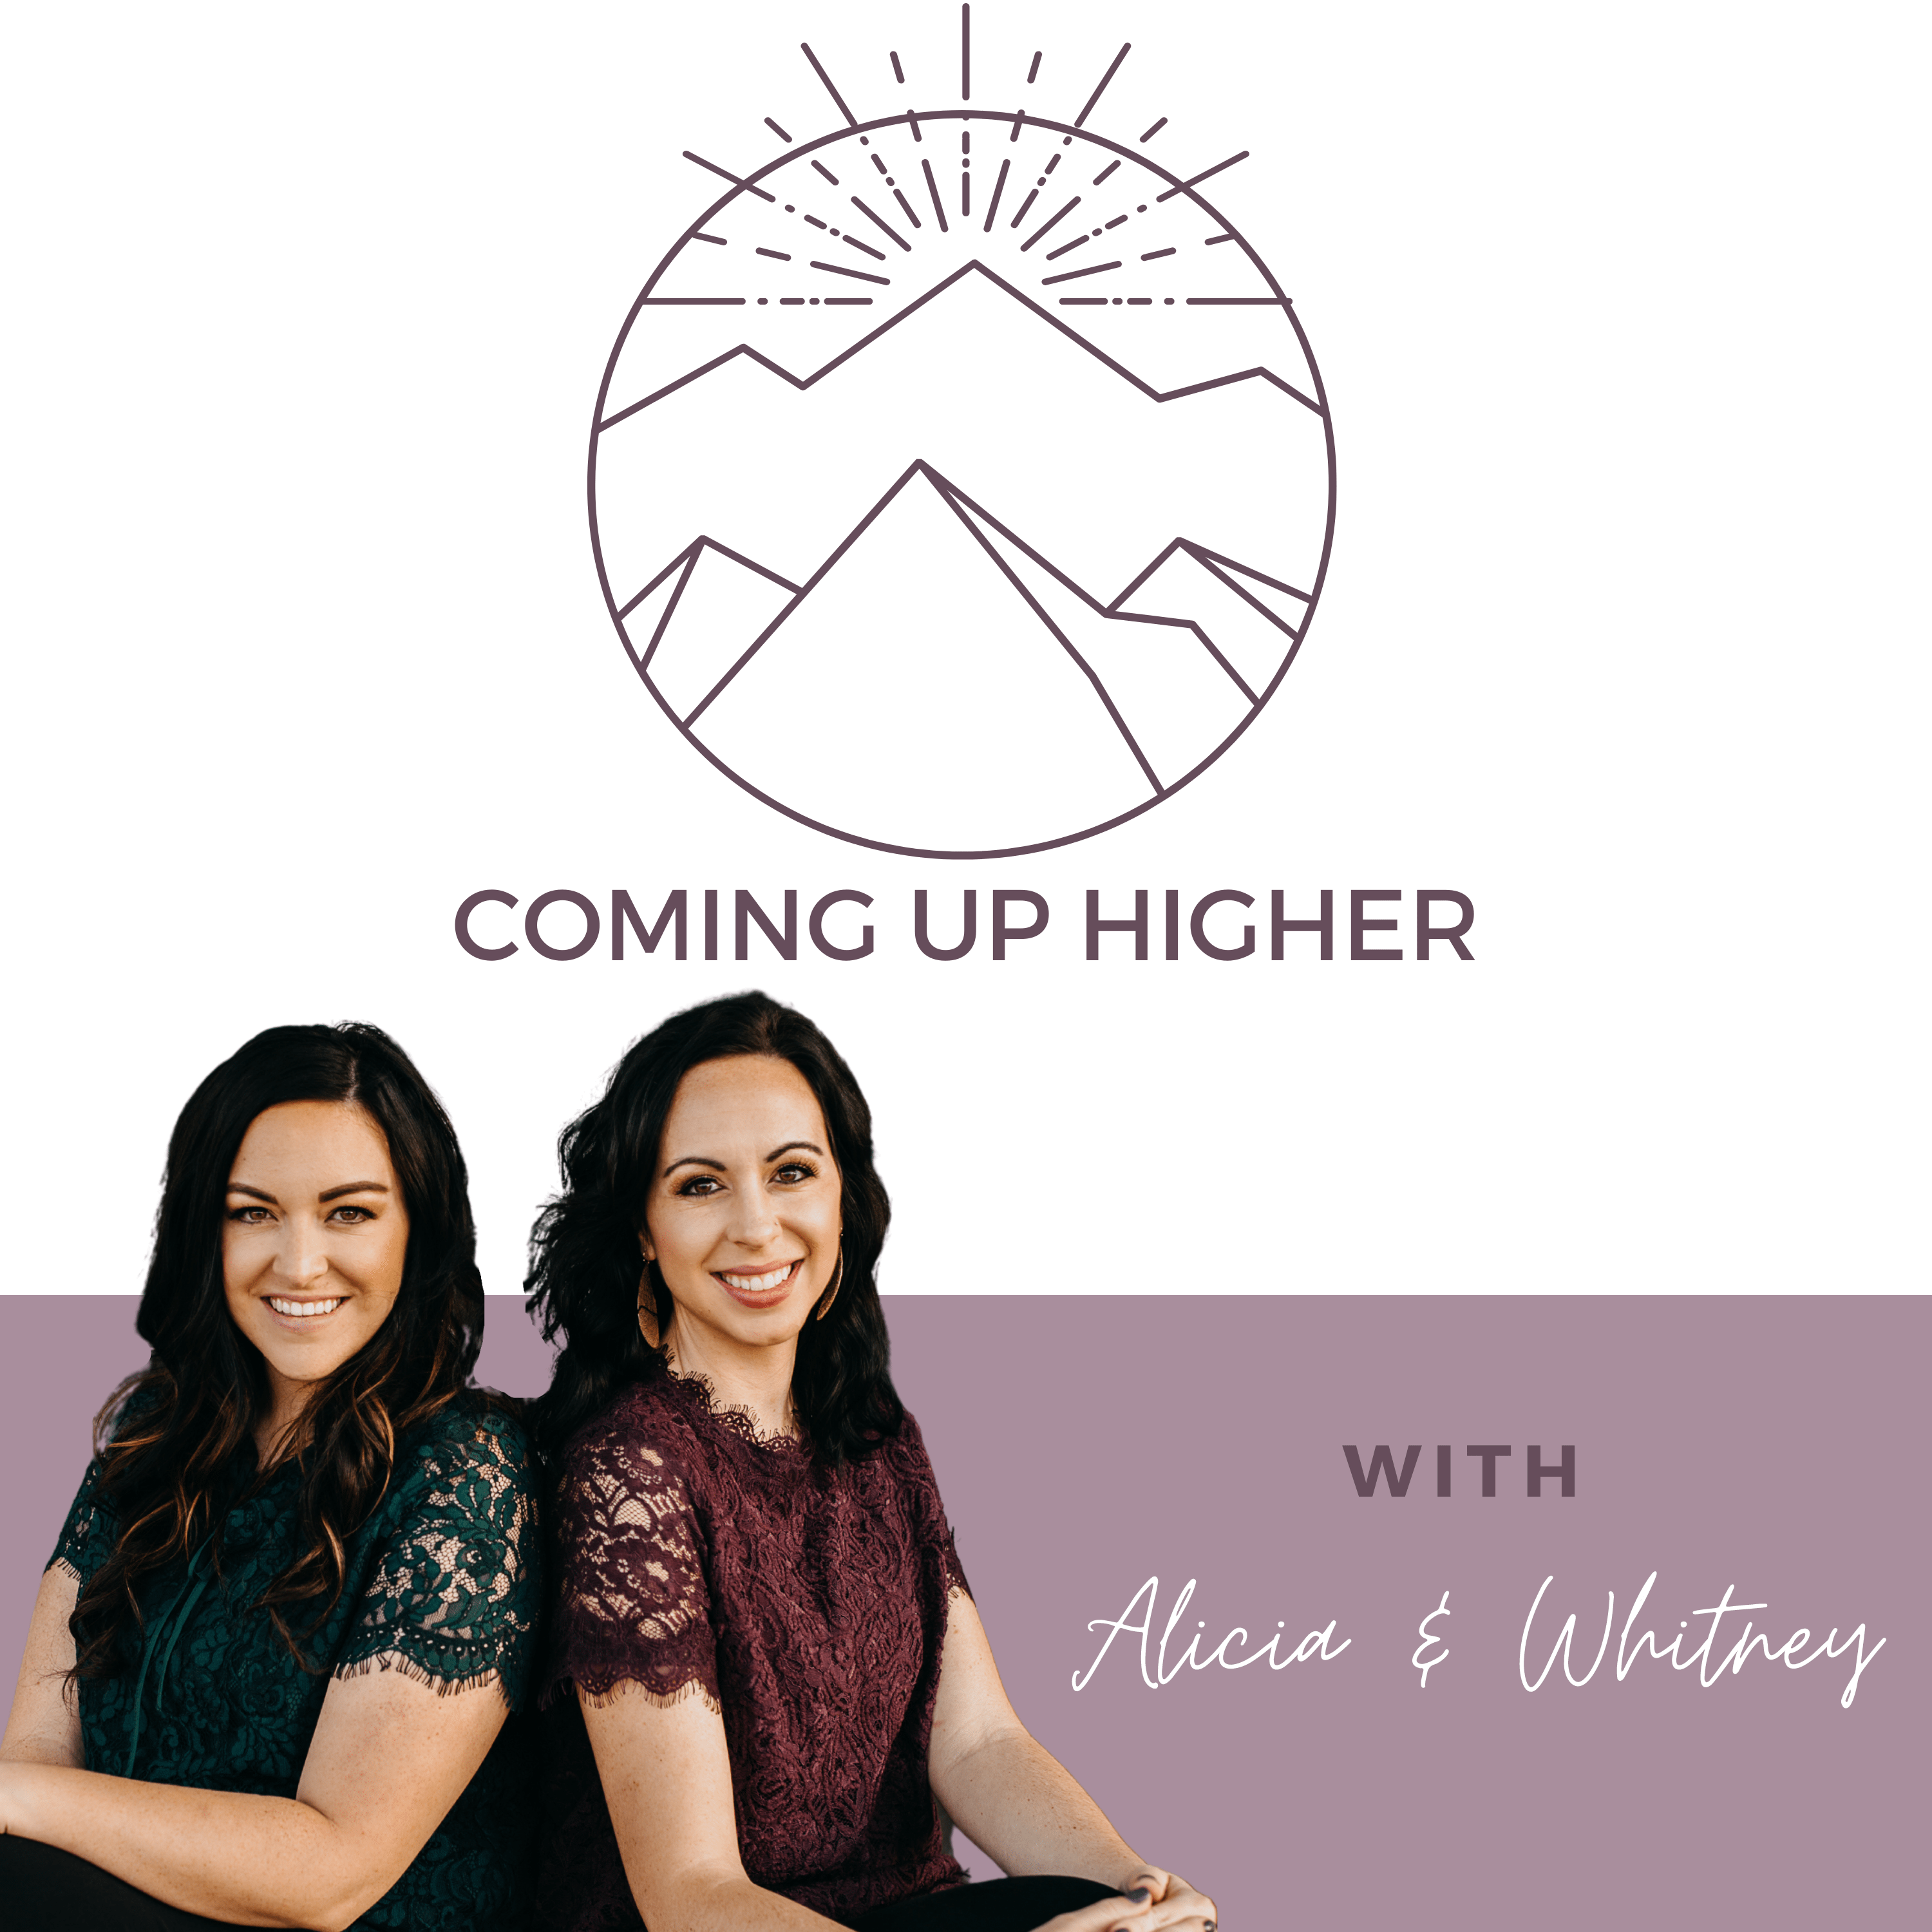 SEASON 2 OF 'COMING UP HIGHER' PODCAST DEBUTS